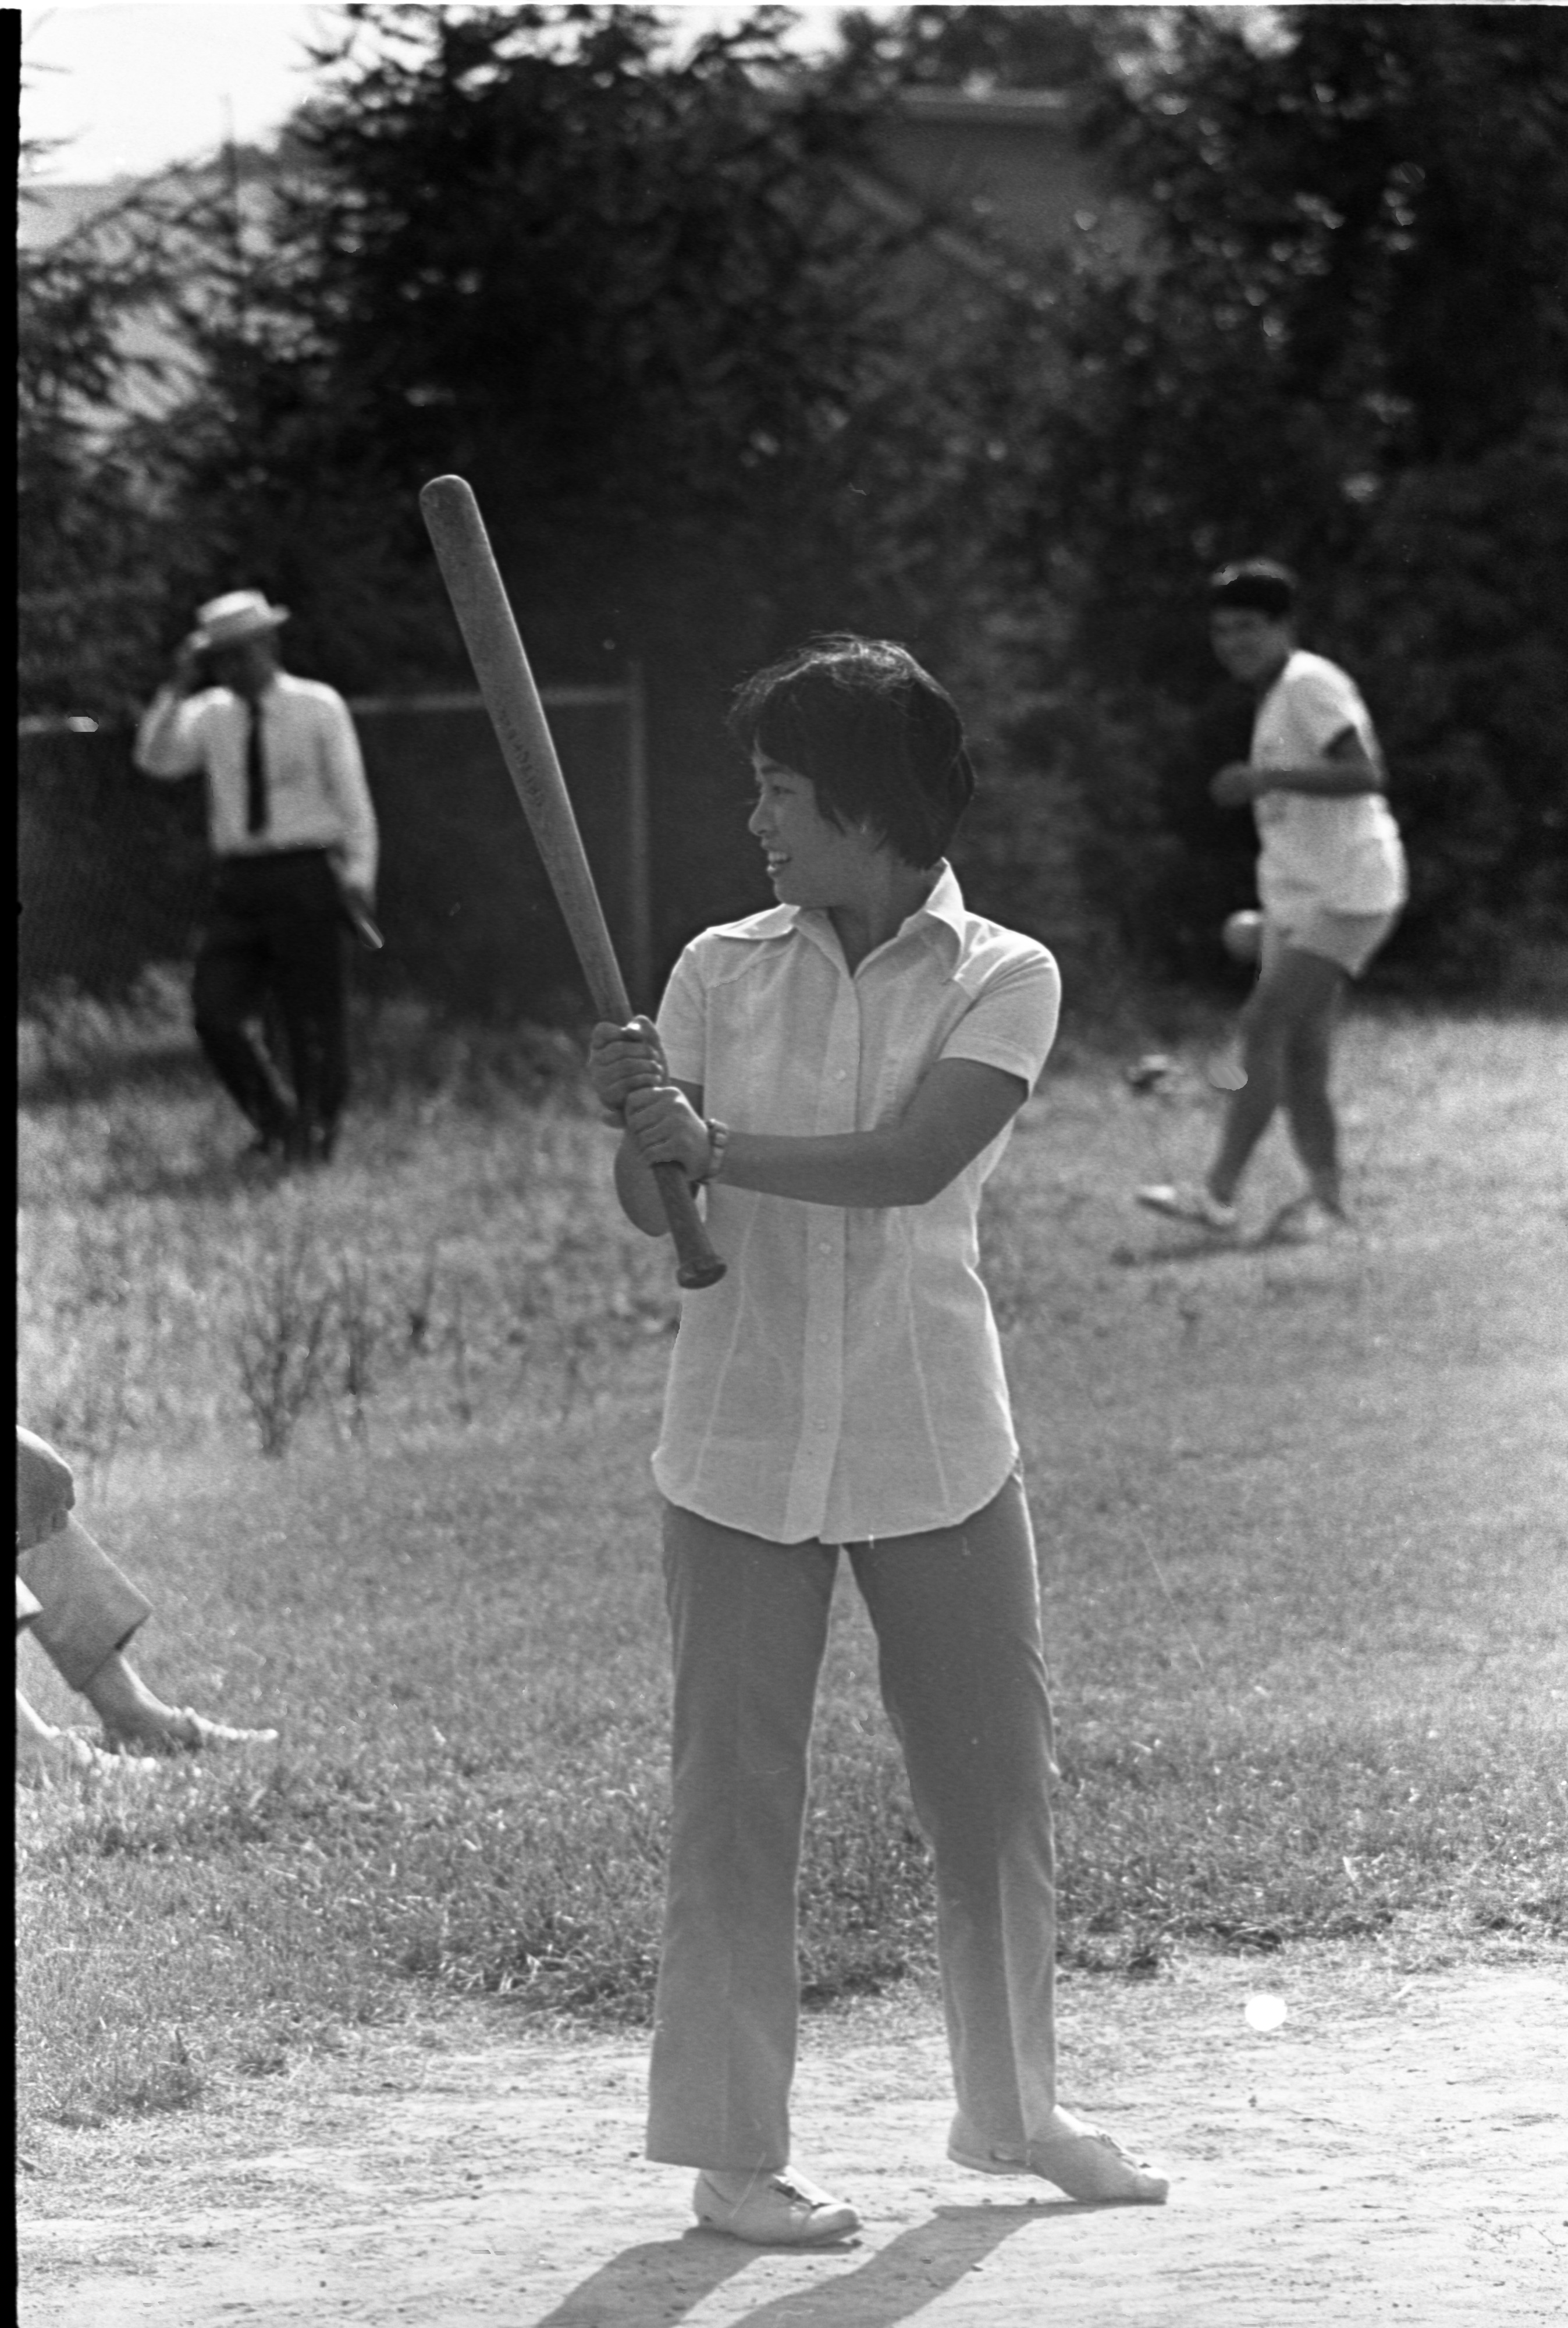 Visiting Japanese High School Students Enjoy Playing Baseball Against Ann Arbor Students At Dicken School, August 9, 1970 image